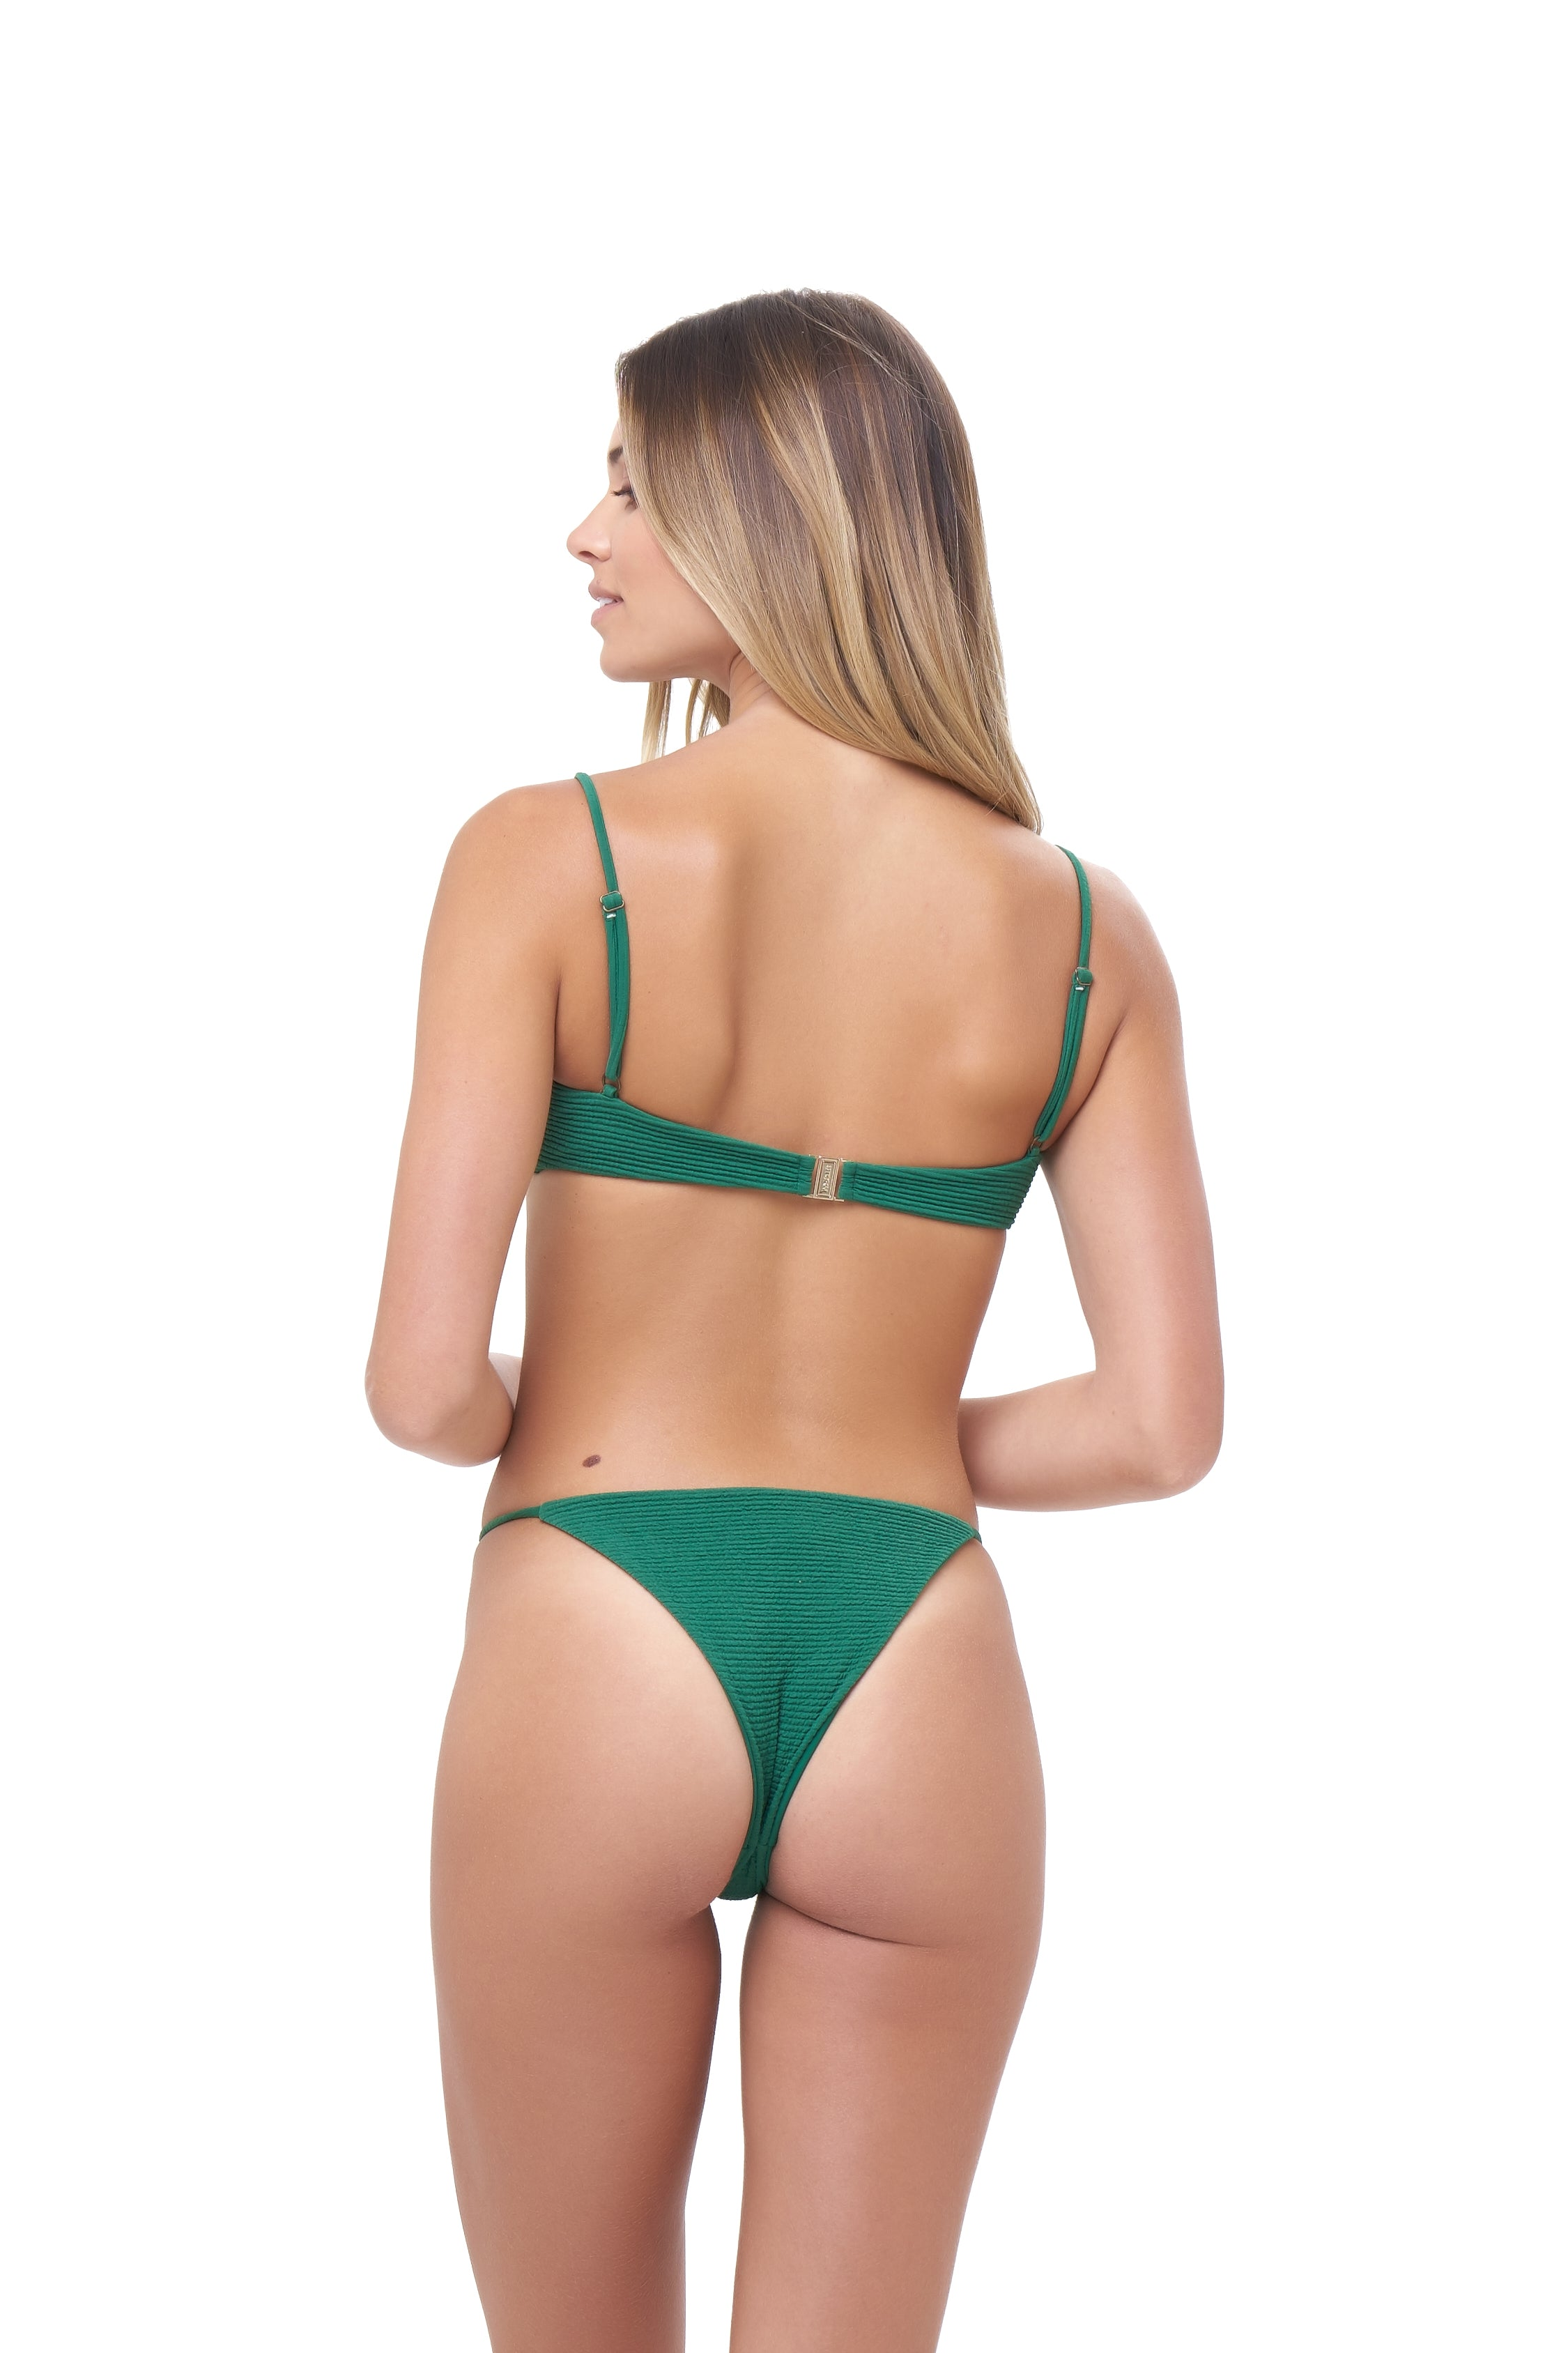 Storm Swimwear - Capri - Tube Single Side Strap Bikini Bottom in Storm Le Nuage Vert